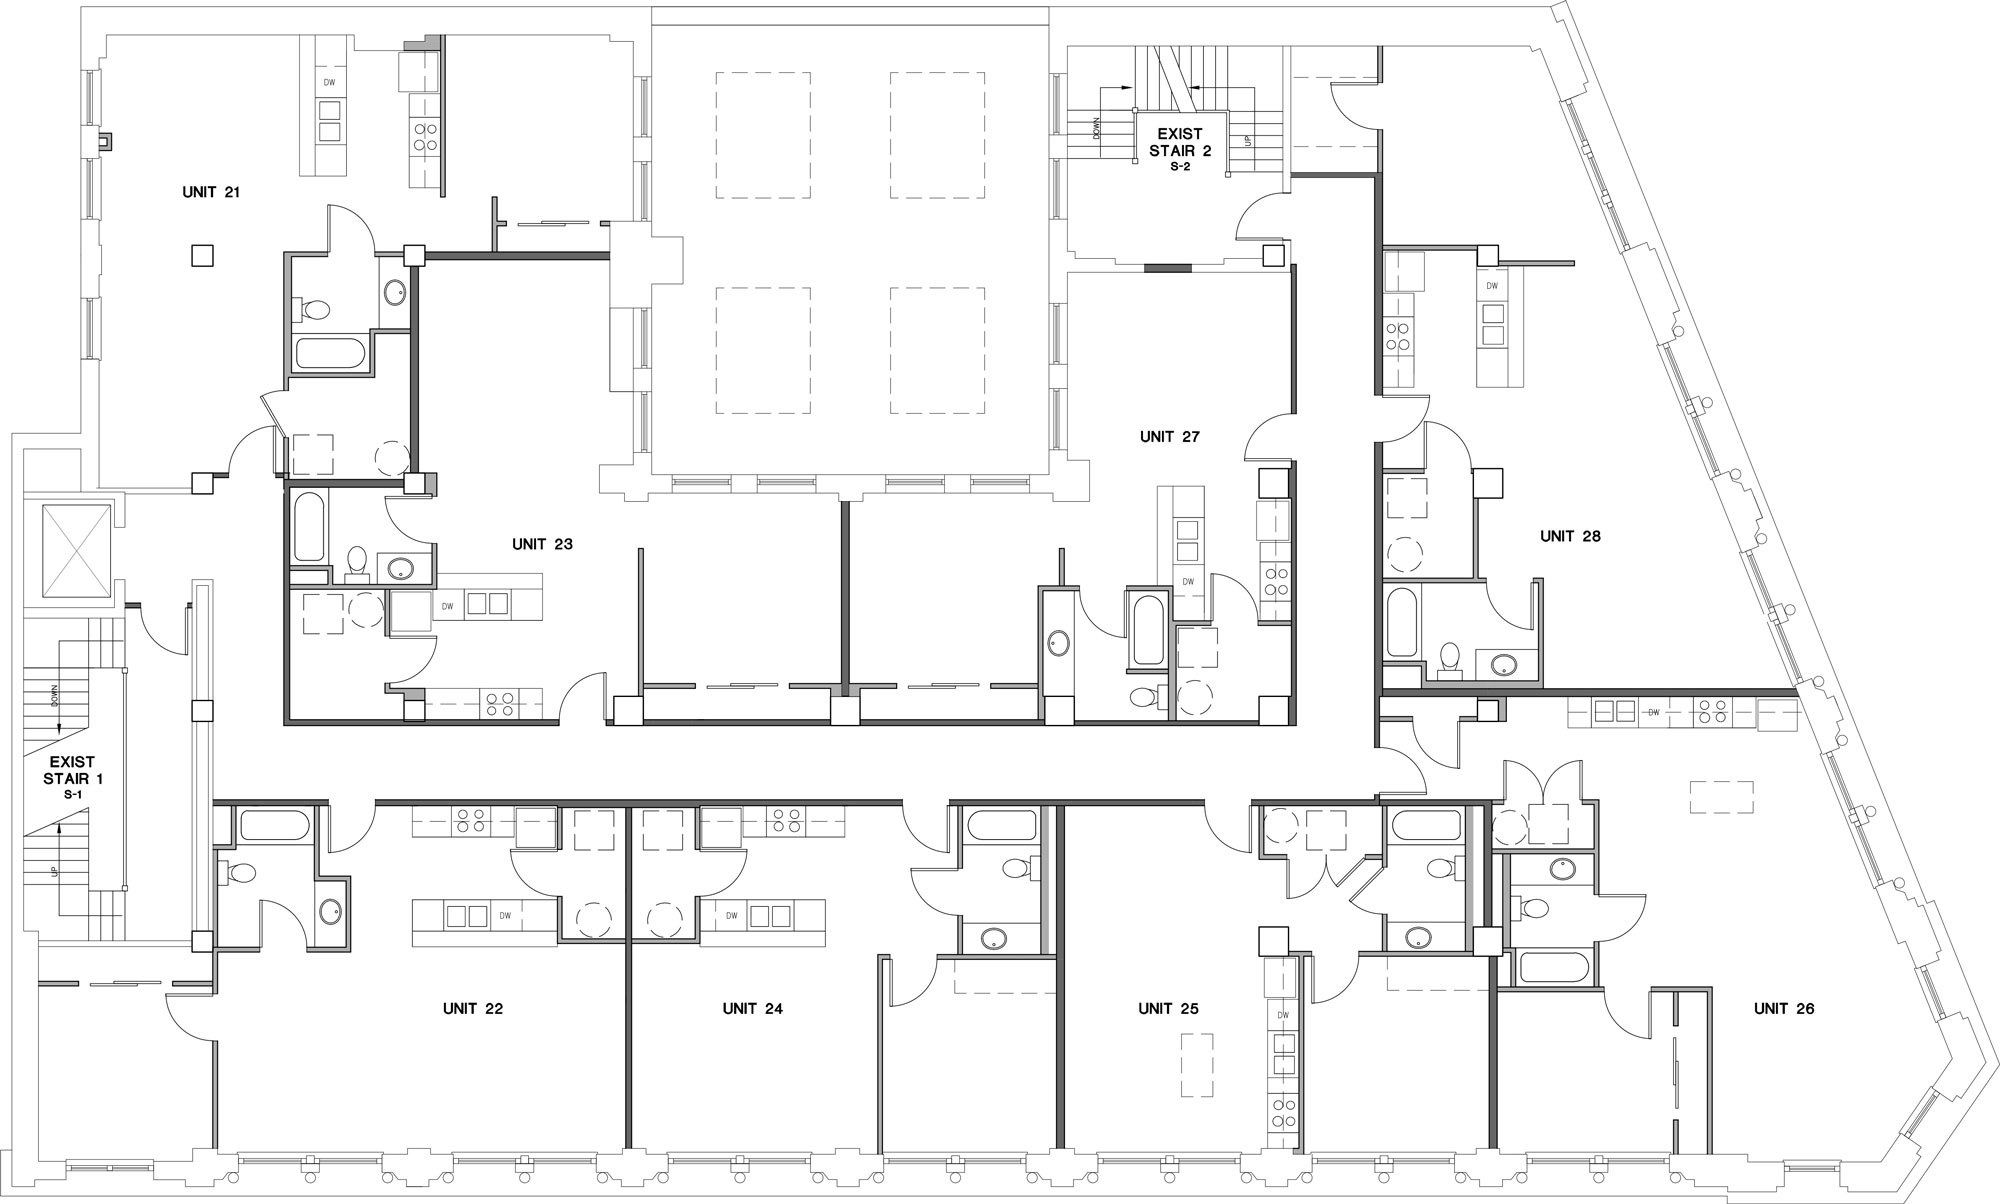 Mutual Building Second Floor Plan